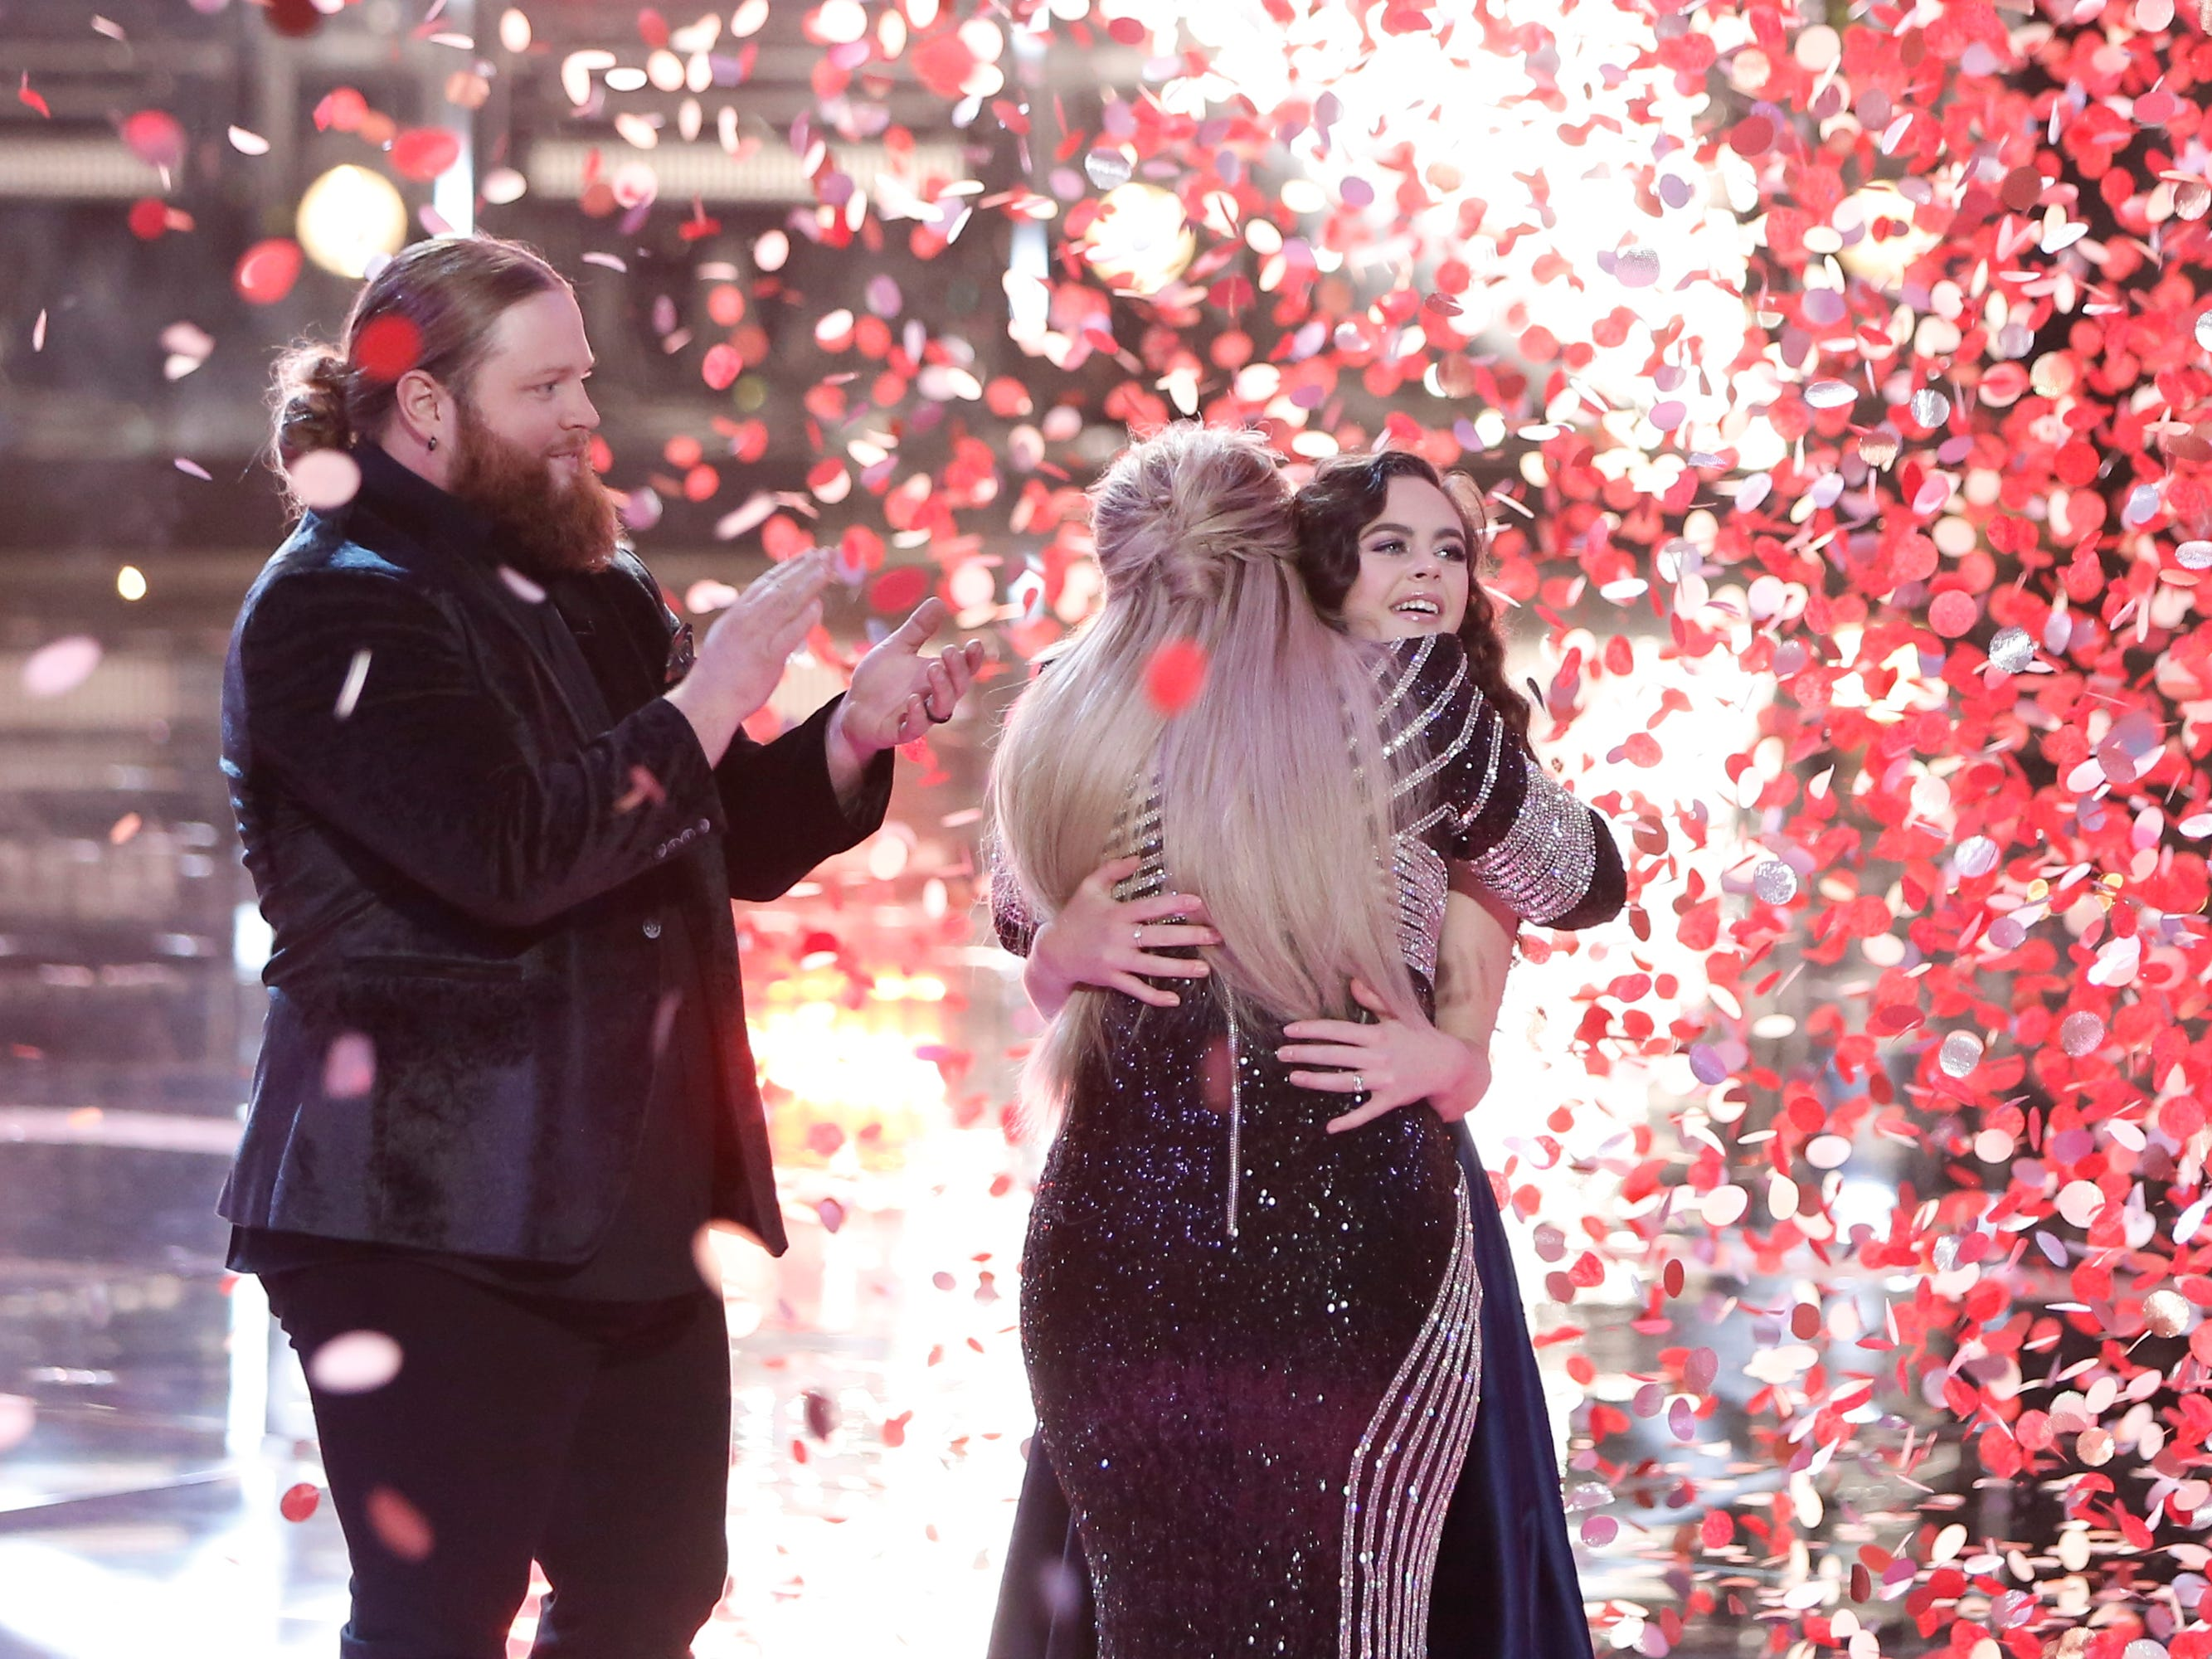 """Country singer Chris Kroeze from Barron applauds for Chevel Shepherd, who won """"The Voice"""" season 15 Tuesday, and her coach Kelly Clarkson. Kroeze came in second place."""